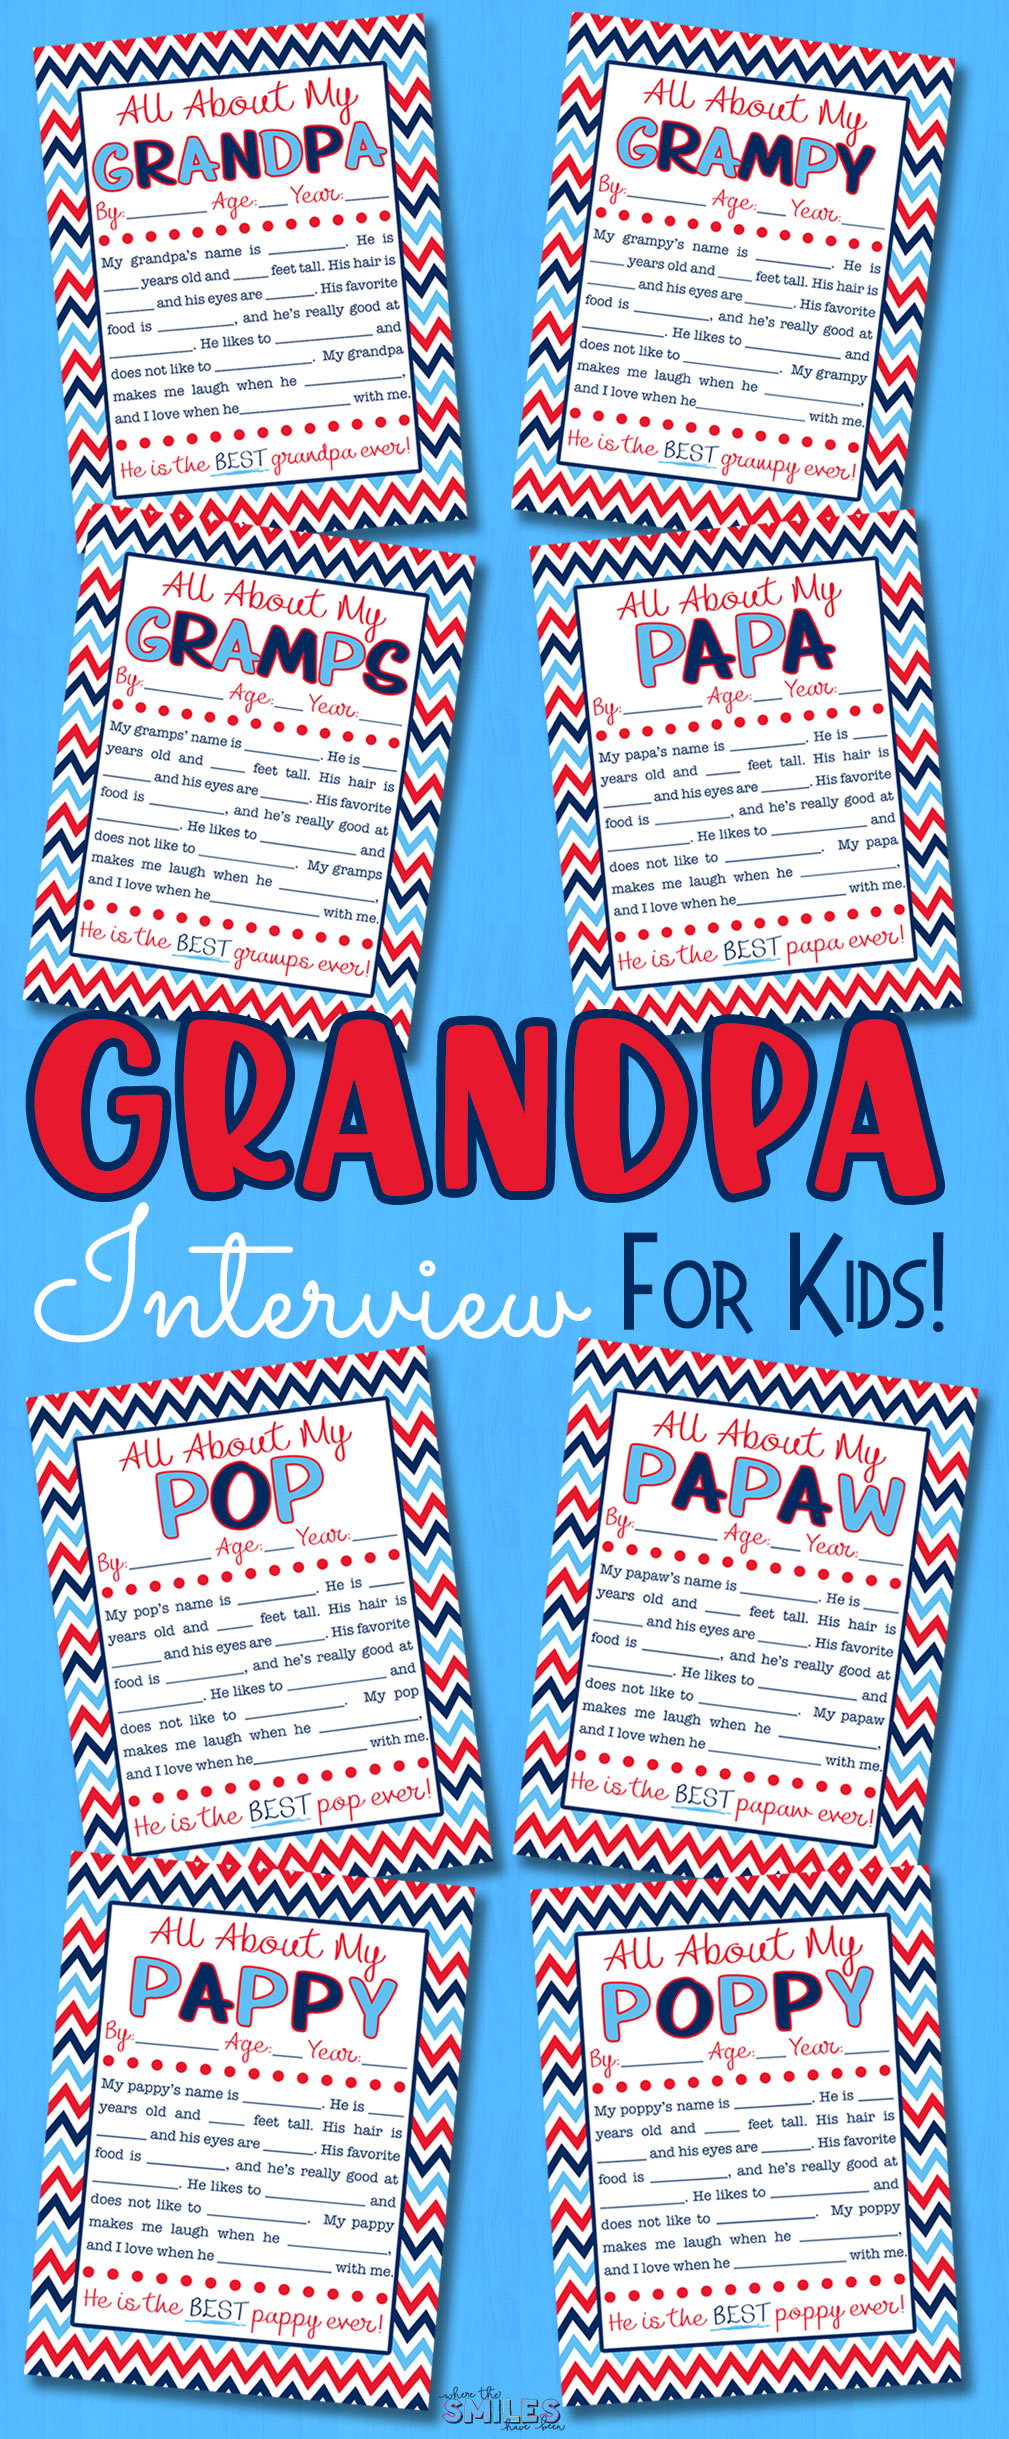 All About My Grandpa Interview with FREE Printable {EIGHT Versions} | Where The Smiles Have Been #Grandpa #Grandparents #GrandparentsDay #FathersDay #grandpainterview